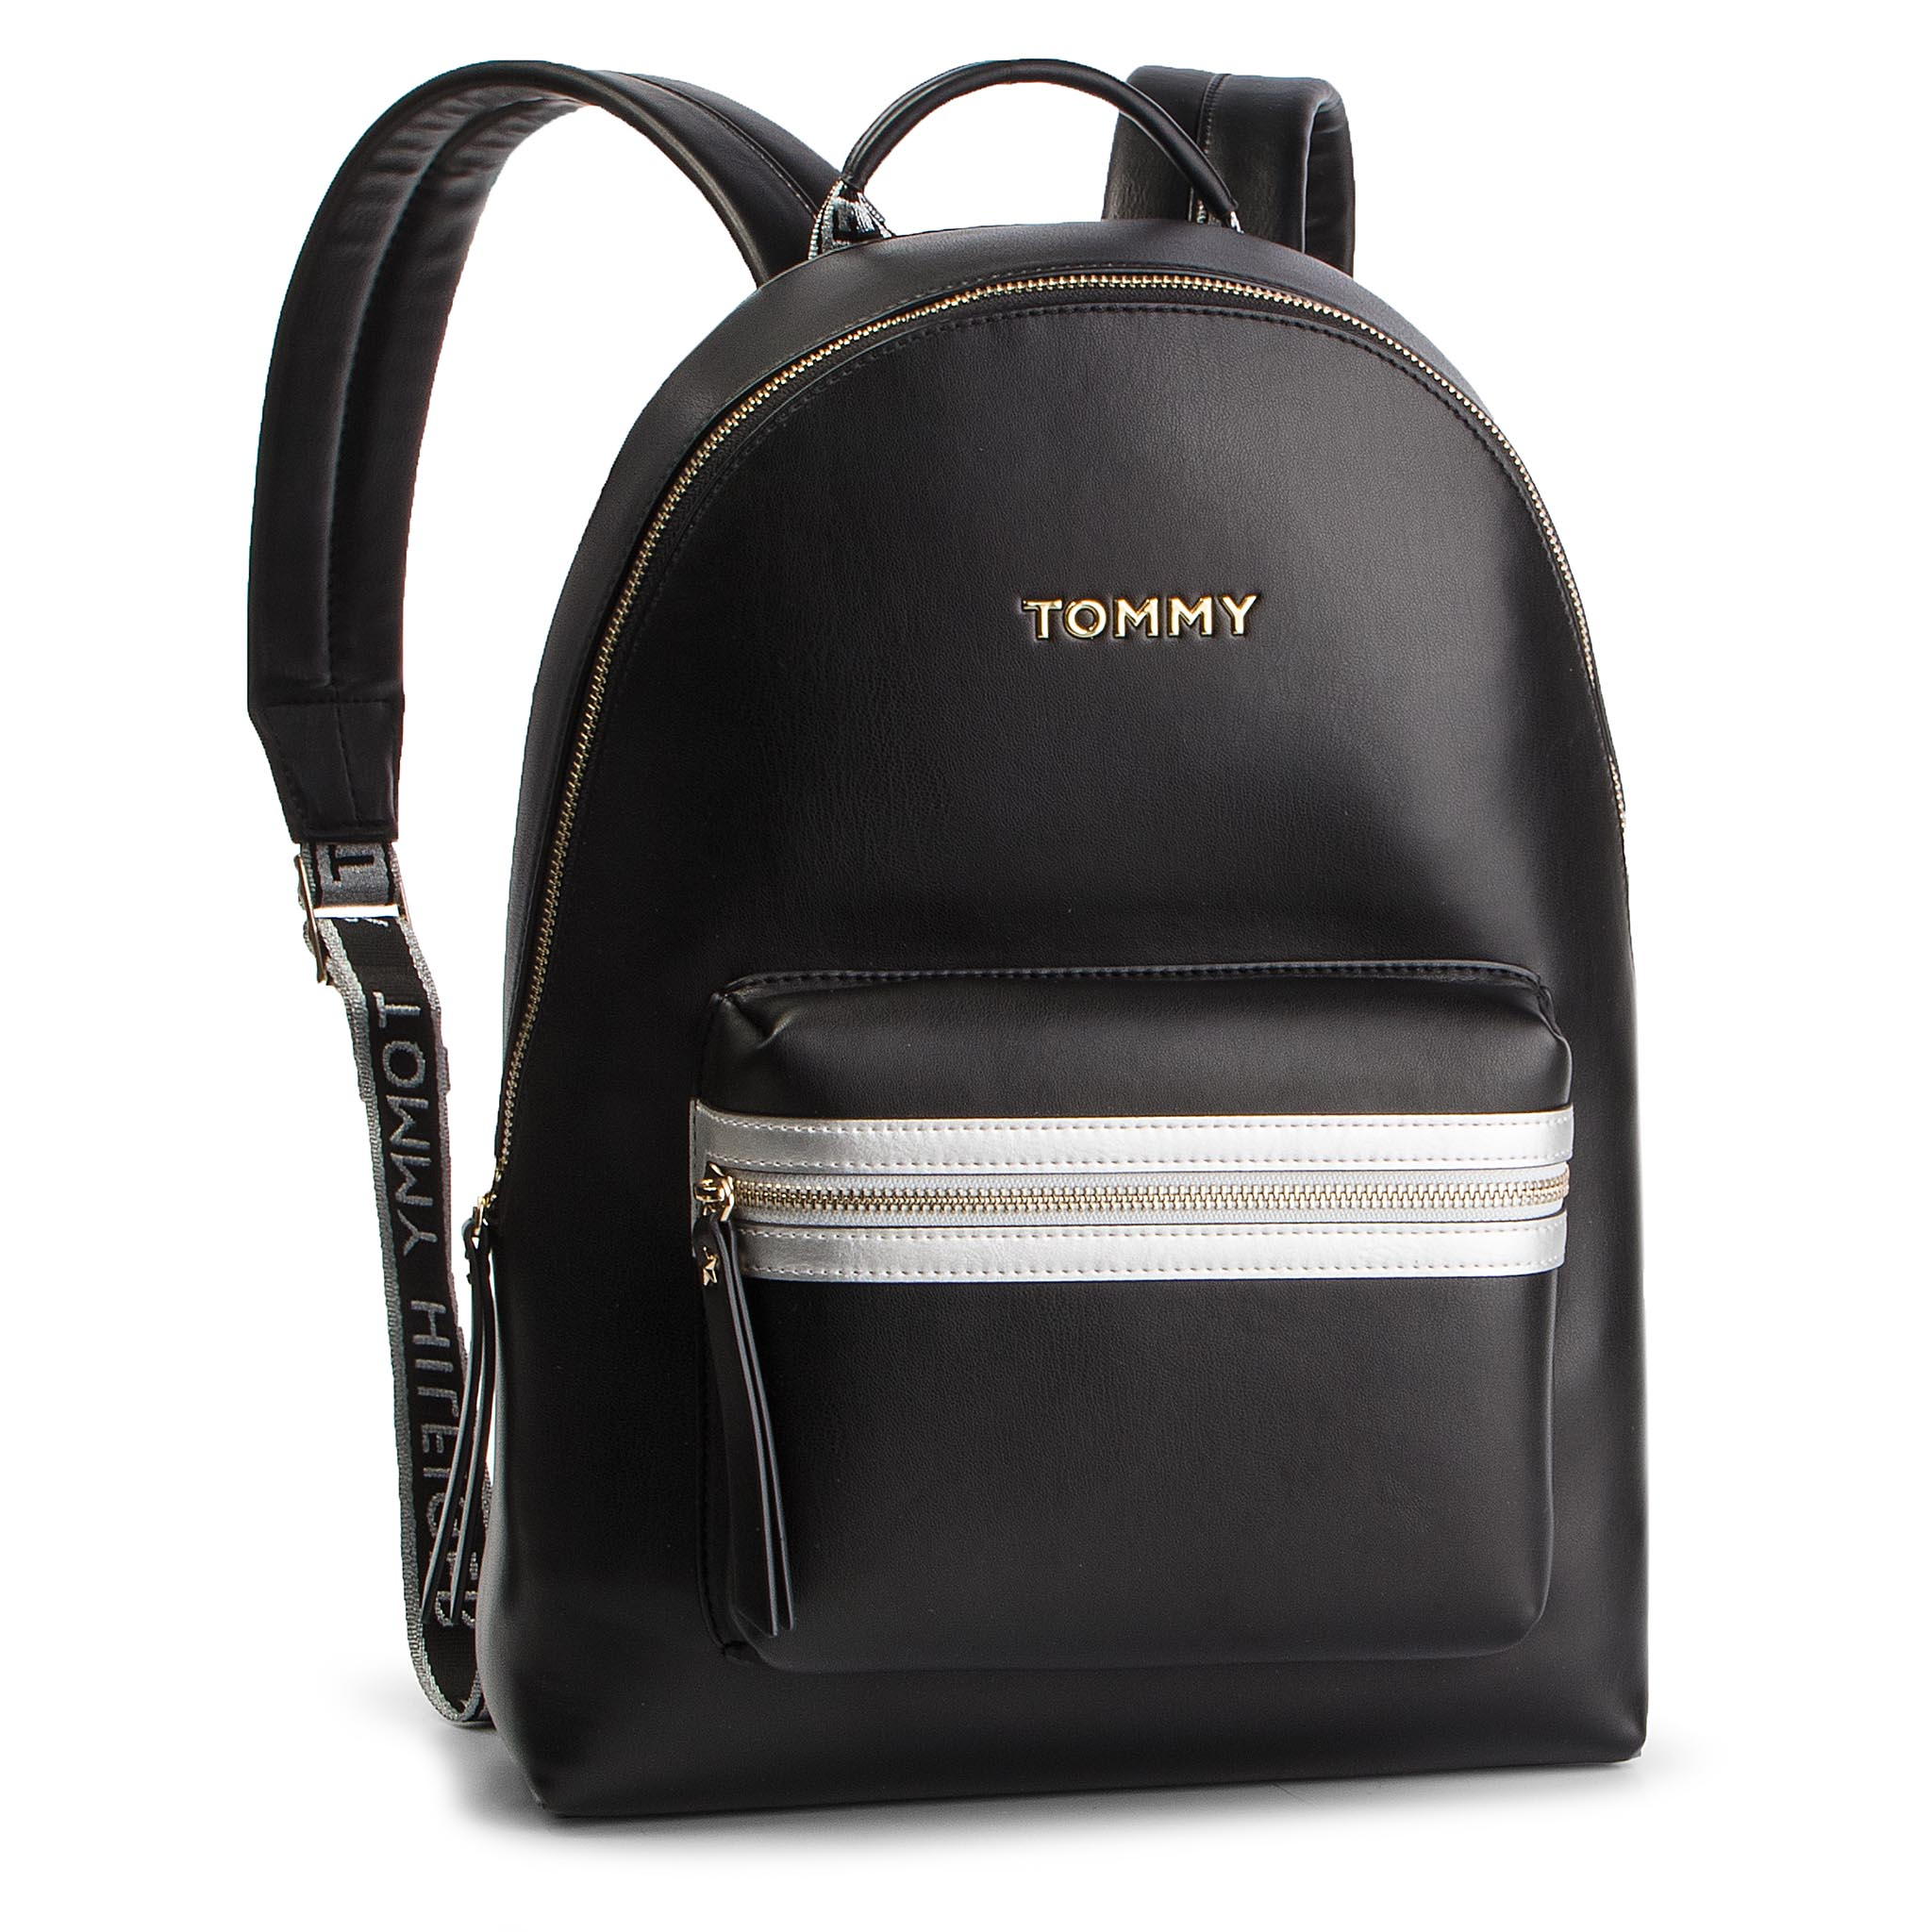 3bfba6e5a2 Batoh TOMMY HILFIGER - Iconic Tommy Backpack AW0AW06404 002